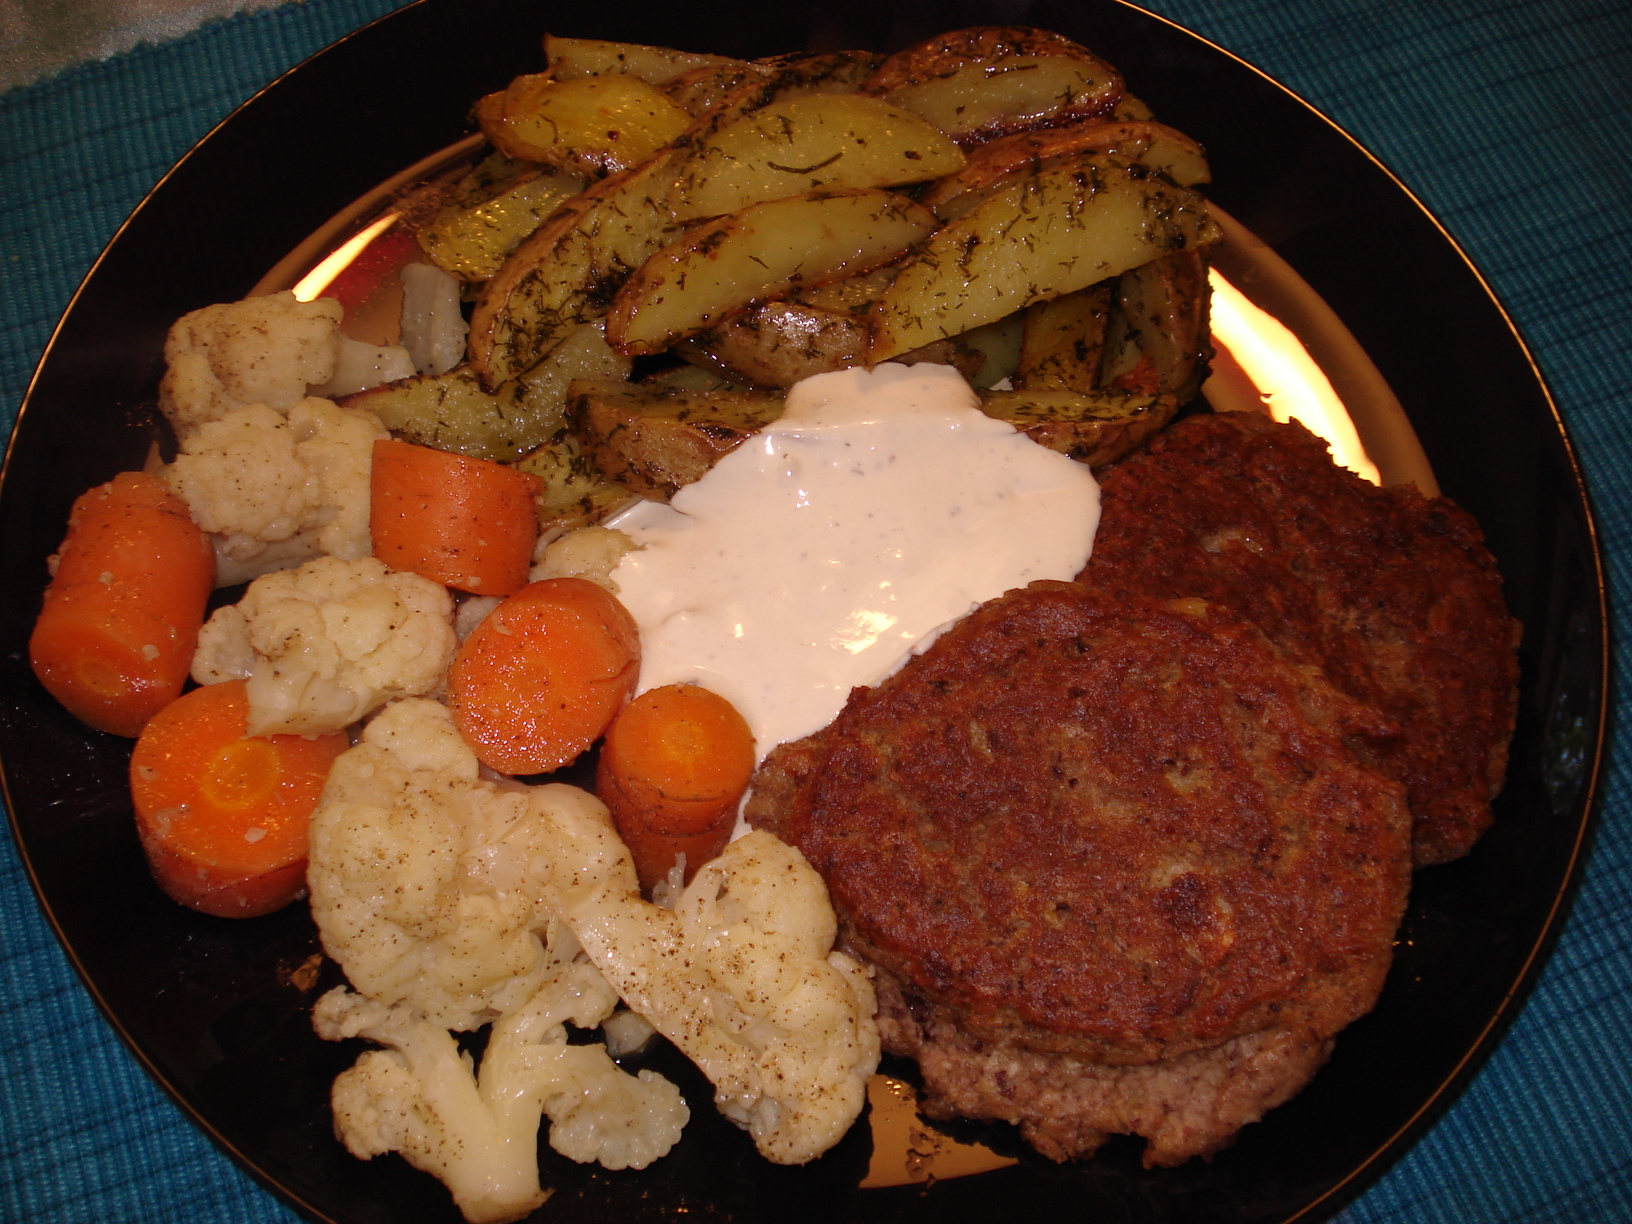 Bean patties with dill and garlic potato wedges and buttered vegetables